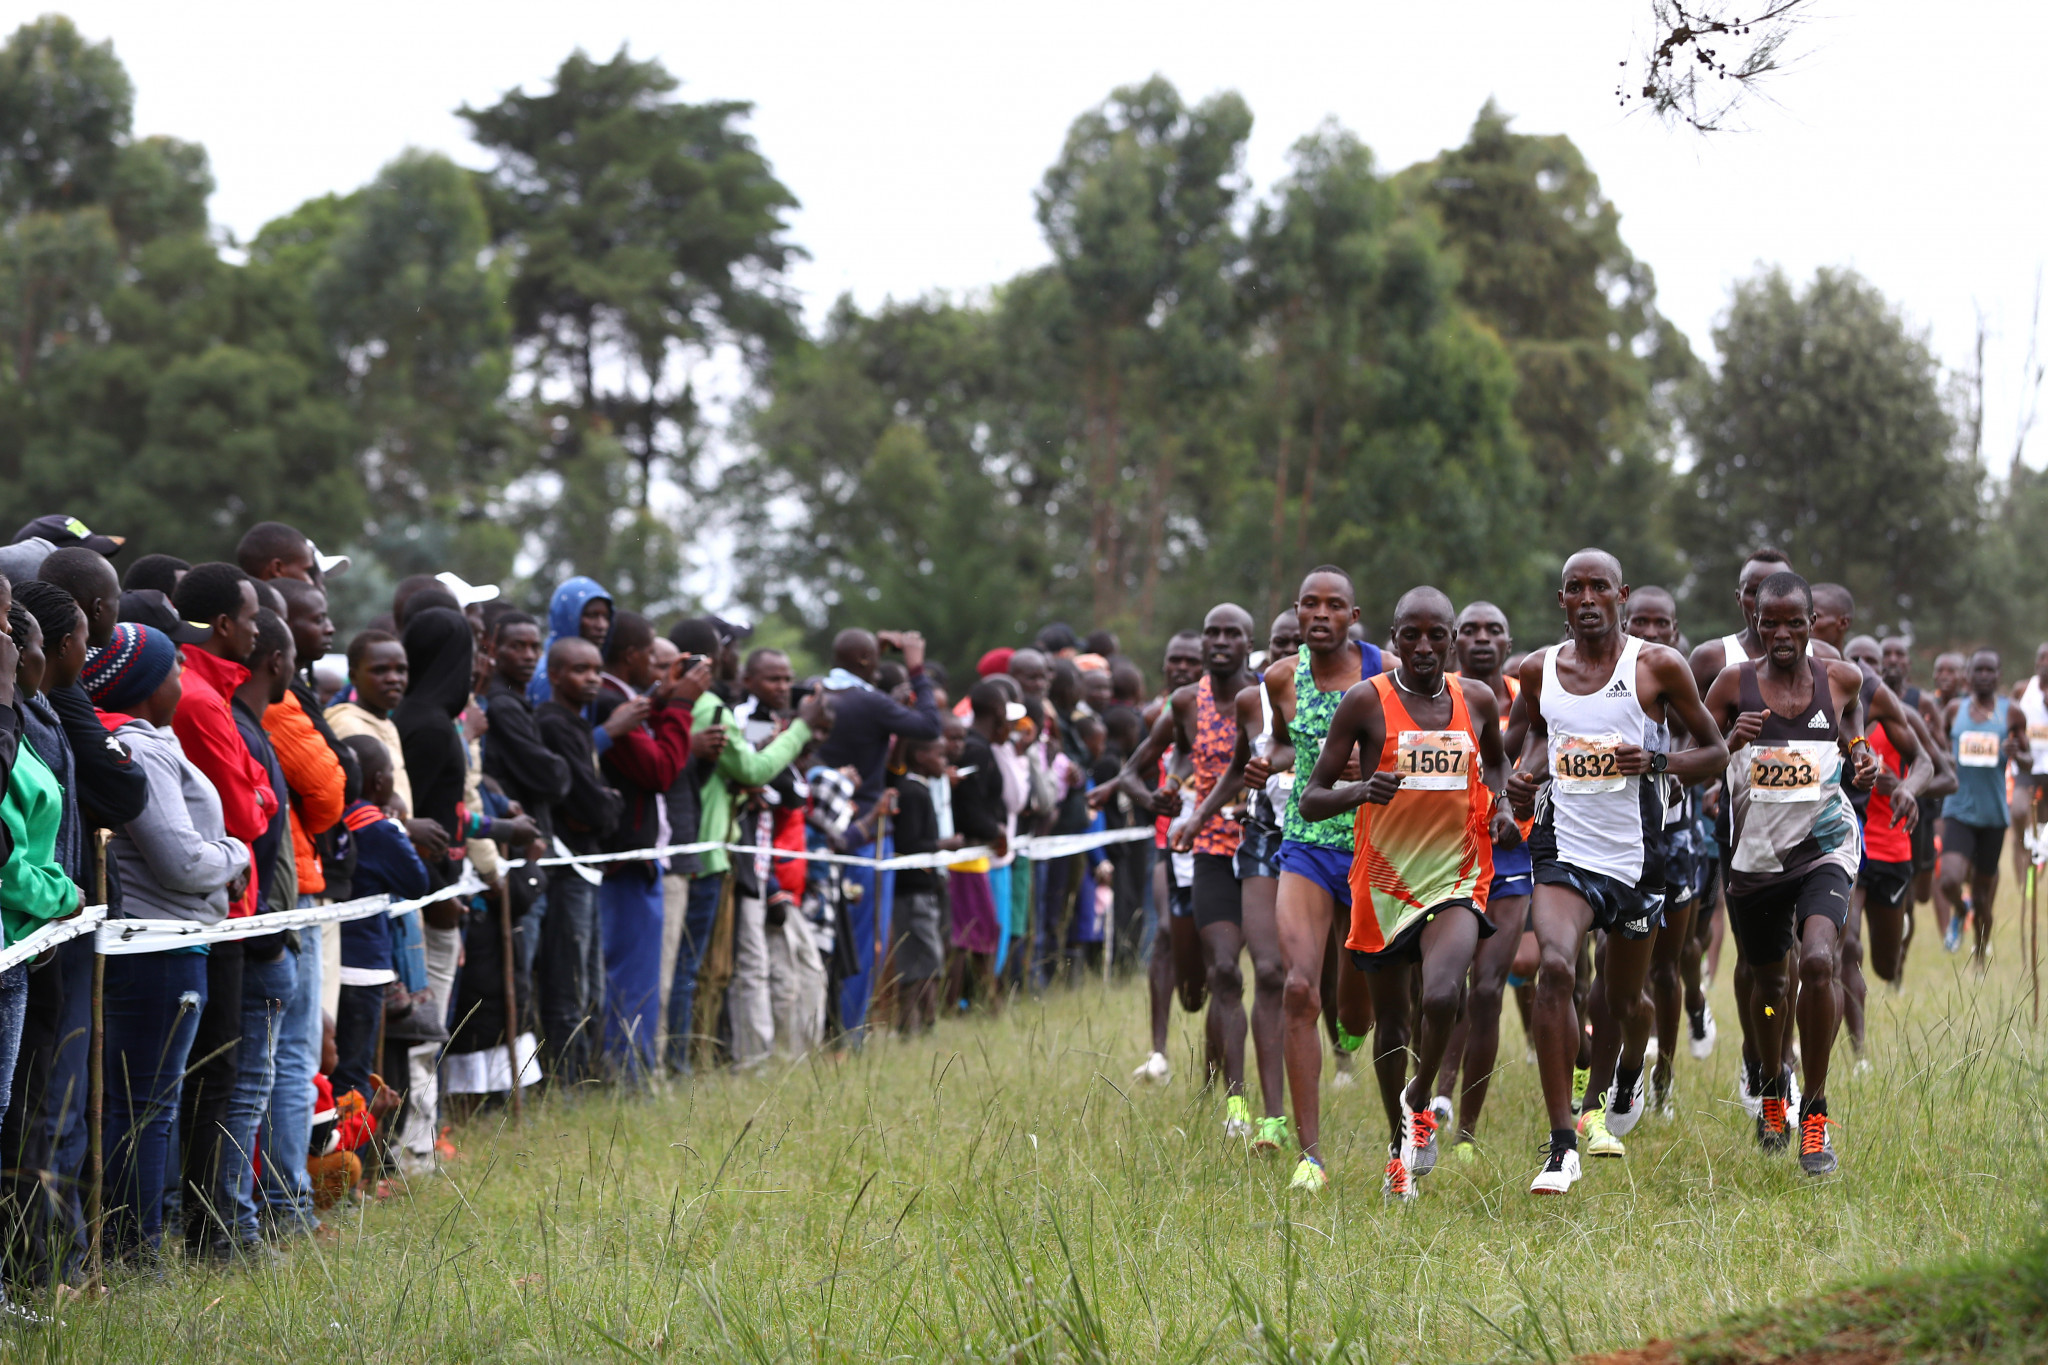 African Cross Country Championships in Togo postponed due to COVID-19 concerns